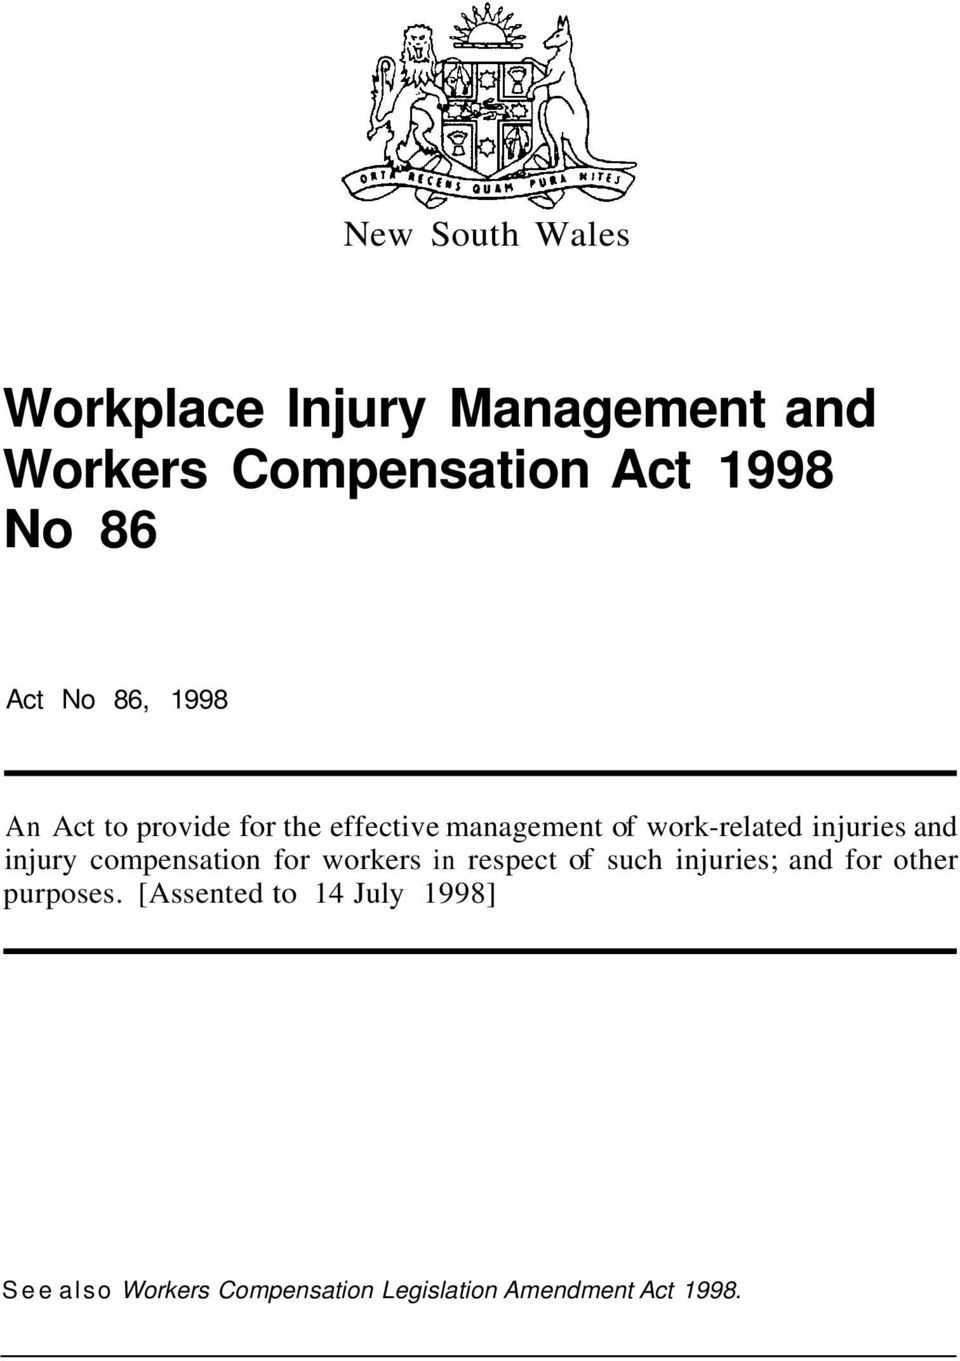 injury compensation for workers in respect of such injuries; and for other purposes.